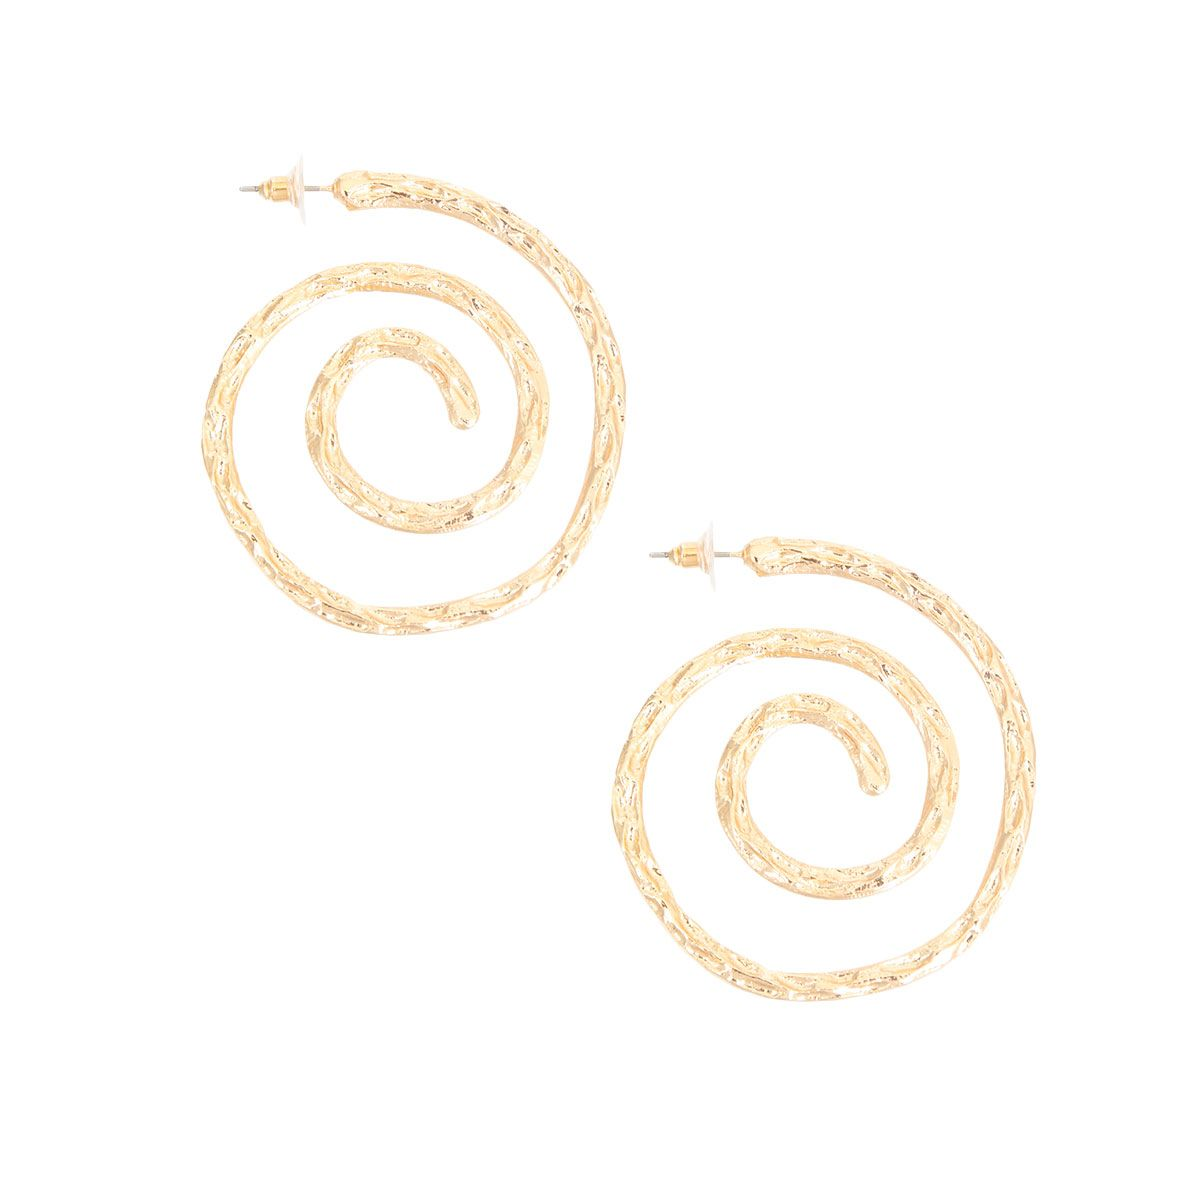 Alicia Gold Coil Earrings